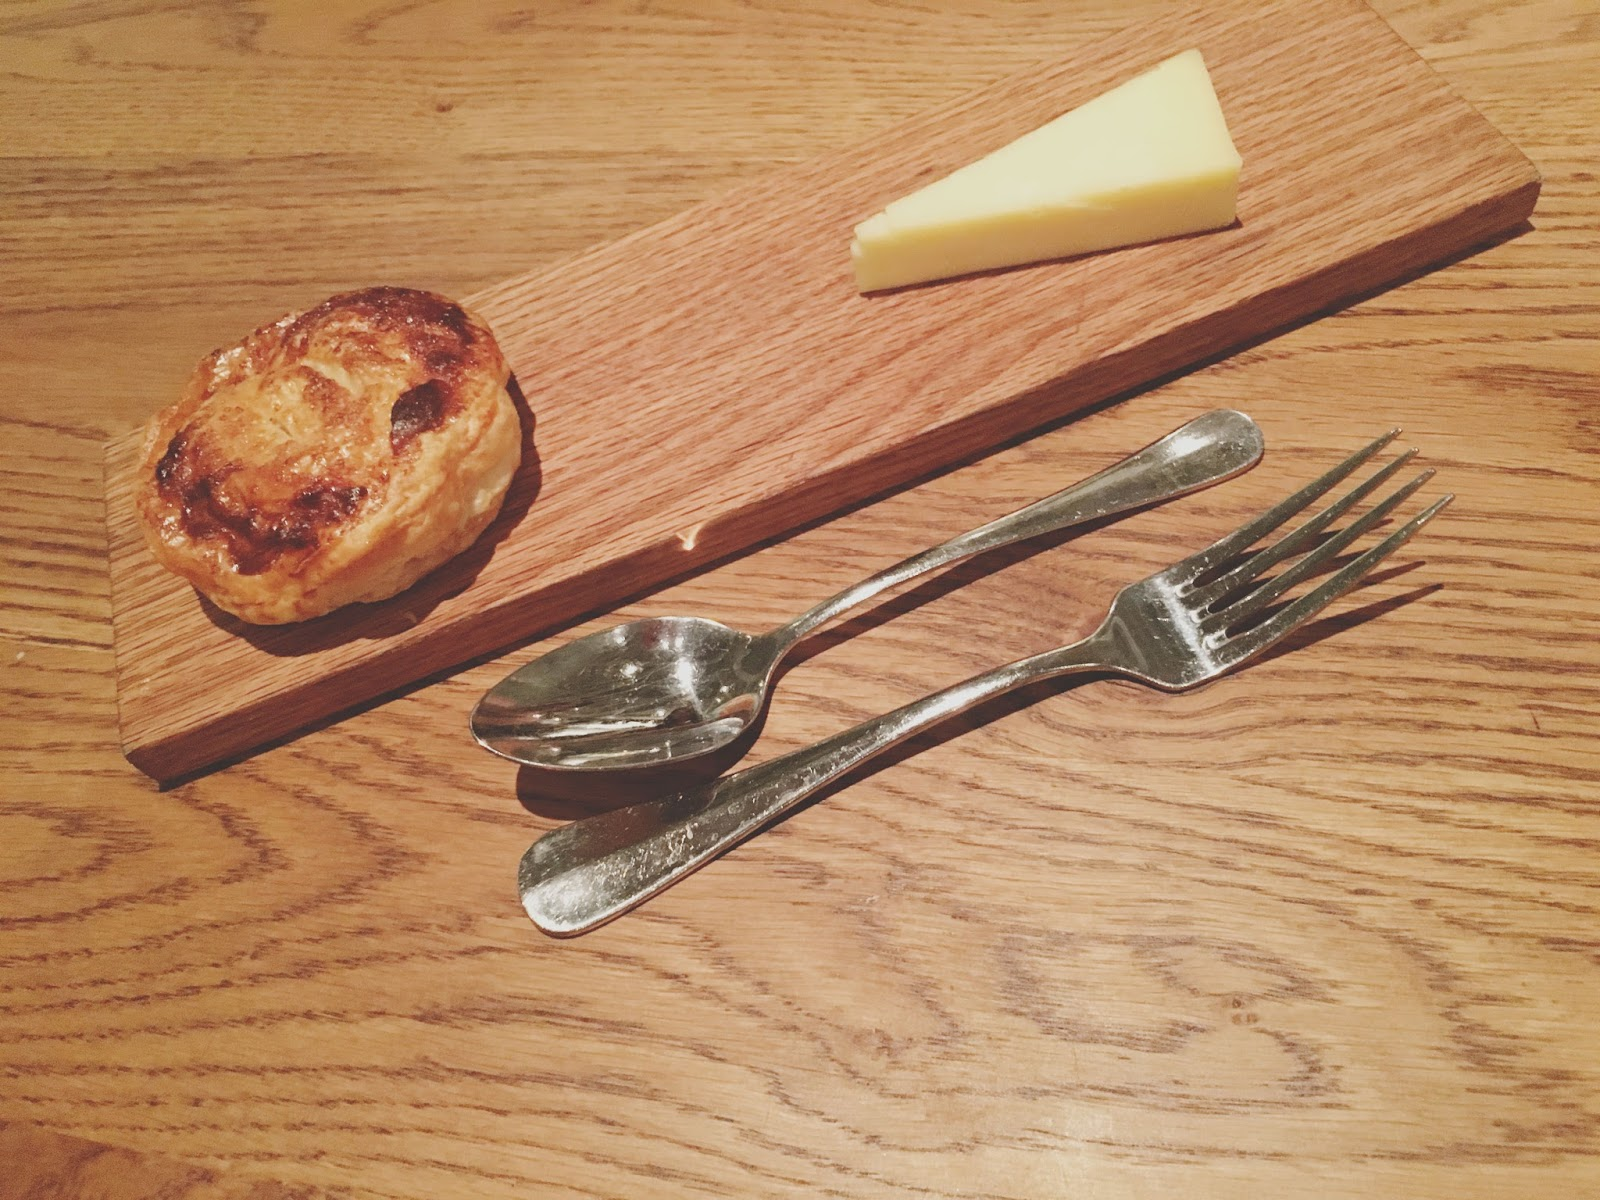 eccles cake with cheddar at Hunky Dory - A restaurant in Houston, Texas